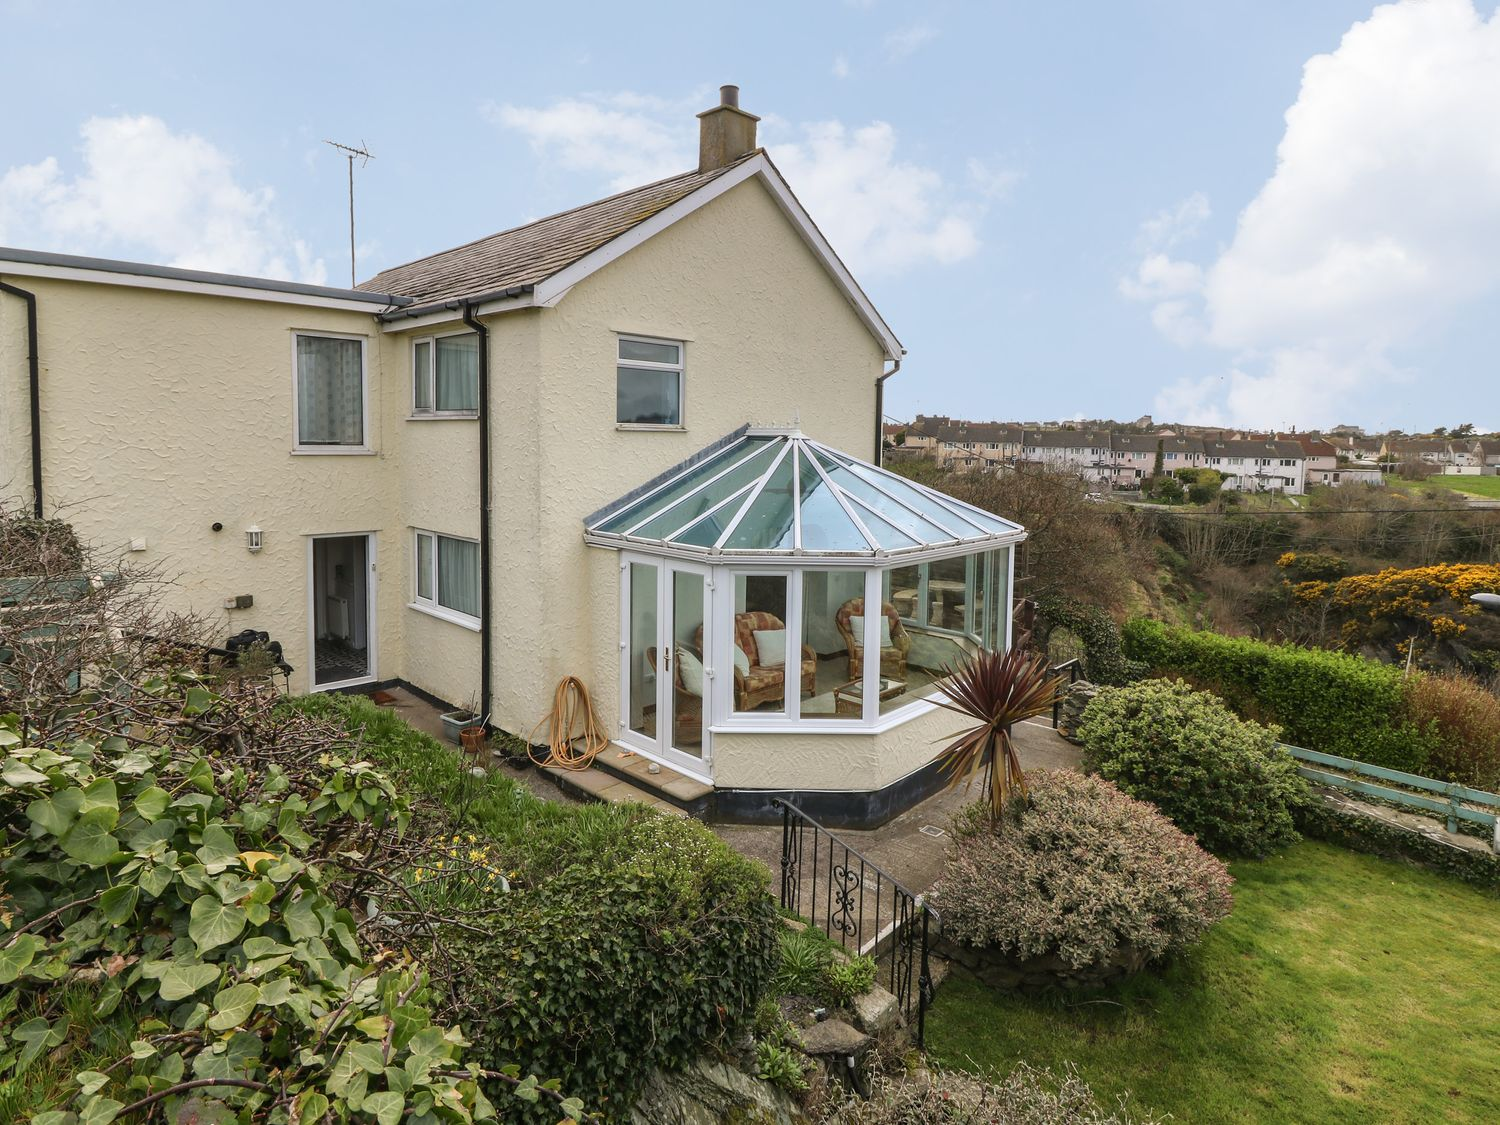 35-37 Upper Quay Street - Anglesey - 1063990 - photo 1